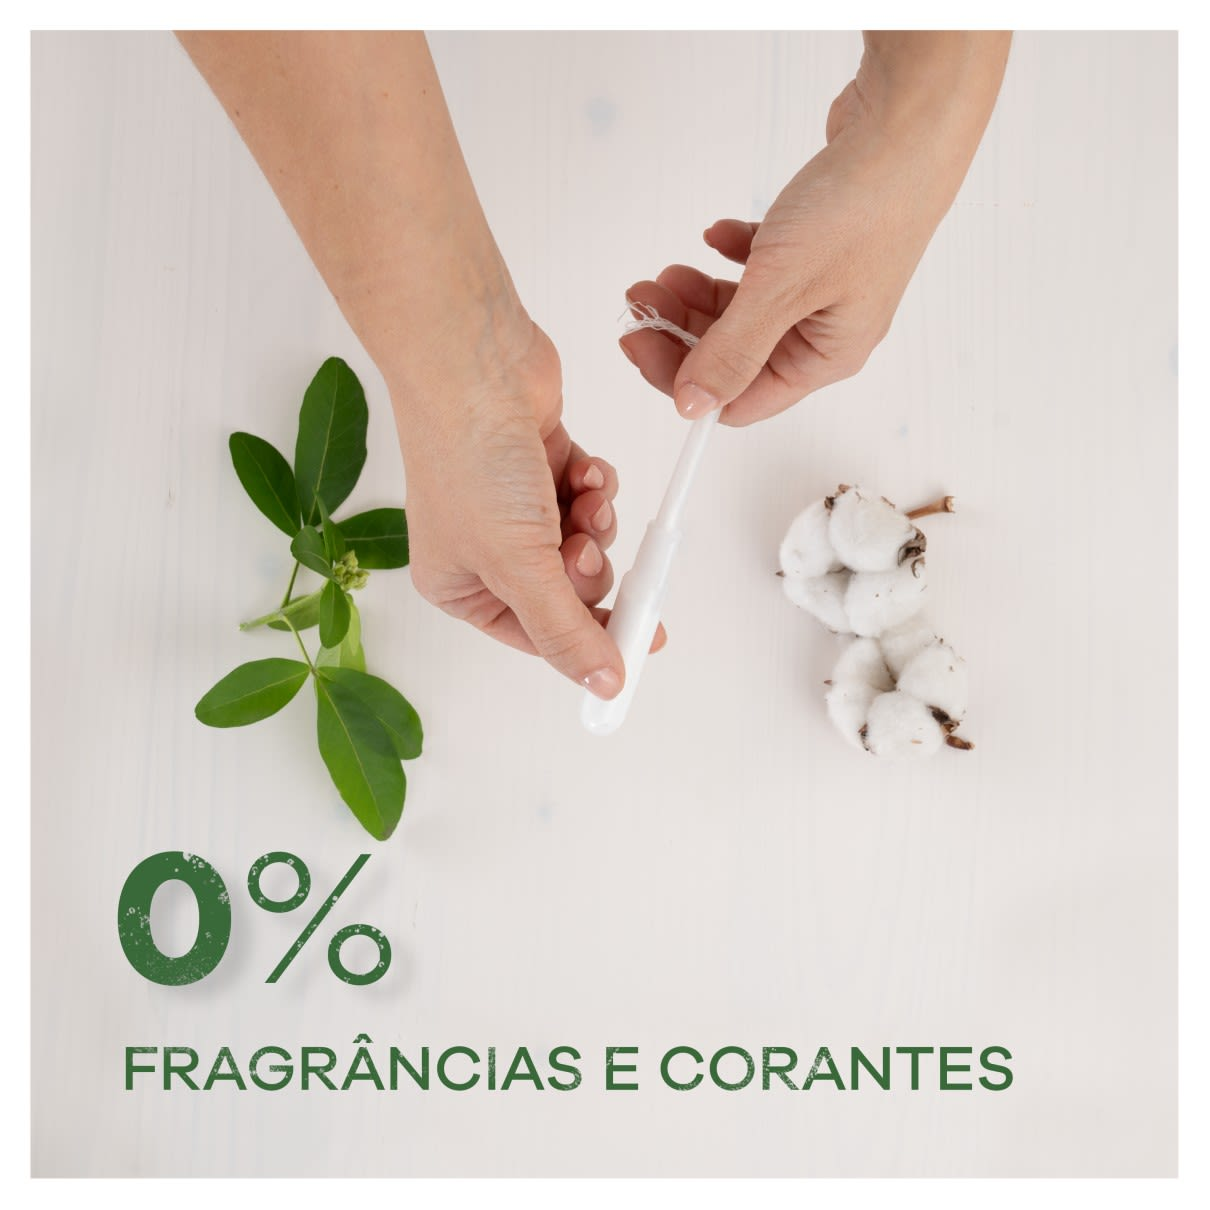 Tampax Lily Cotton Protection 0% Fragrancias e Corantes